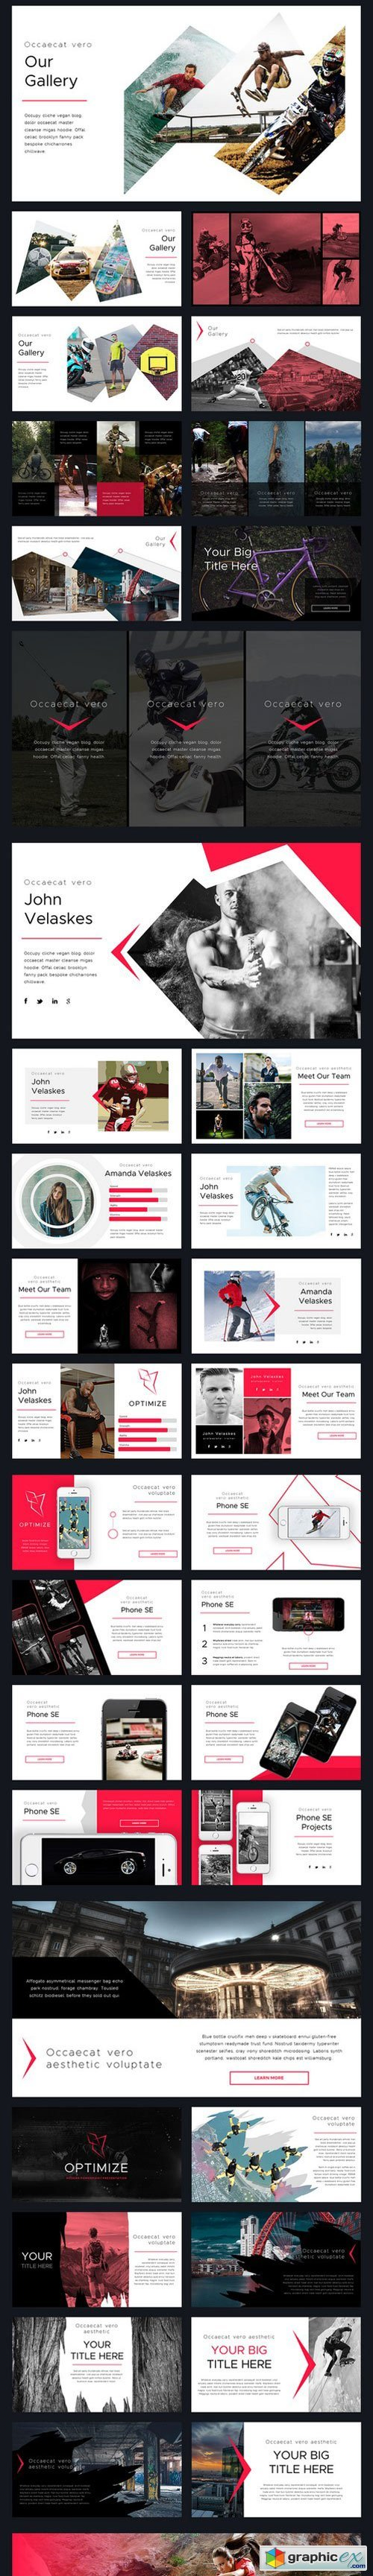 modern powerpoint template choice image - templates example free, Powerpoint templates